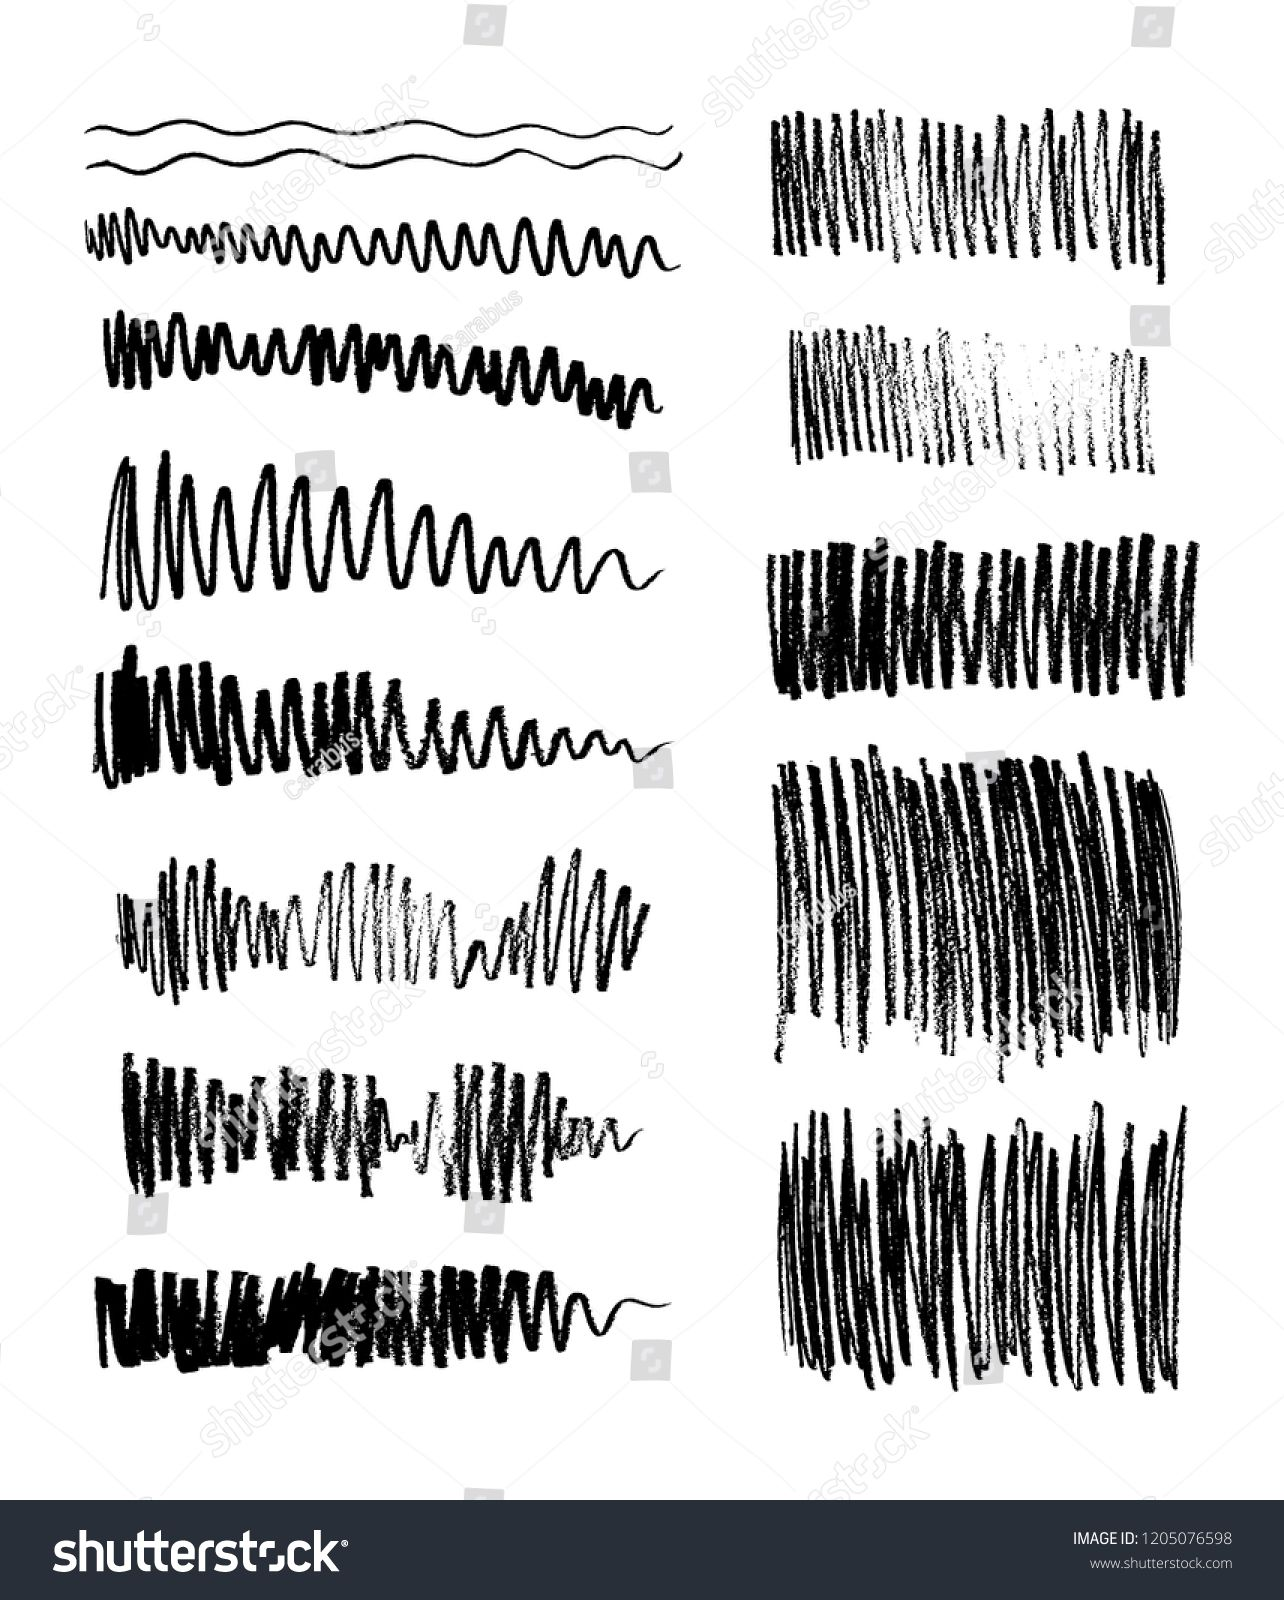 Set of vector grungy graphite pencil art brushes. Pencil